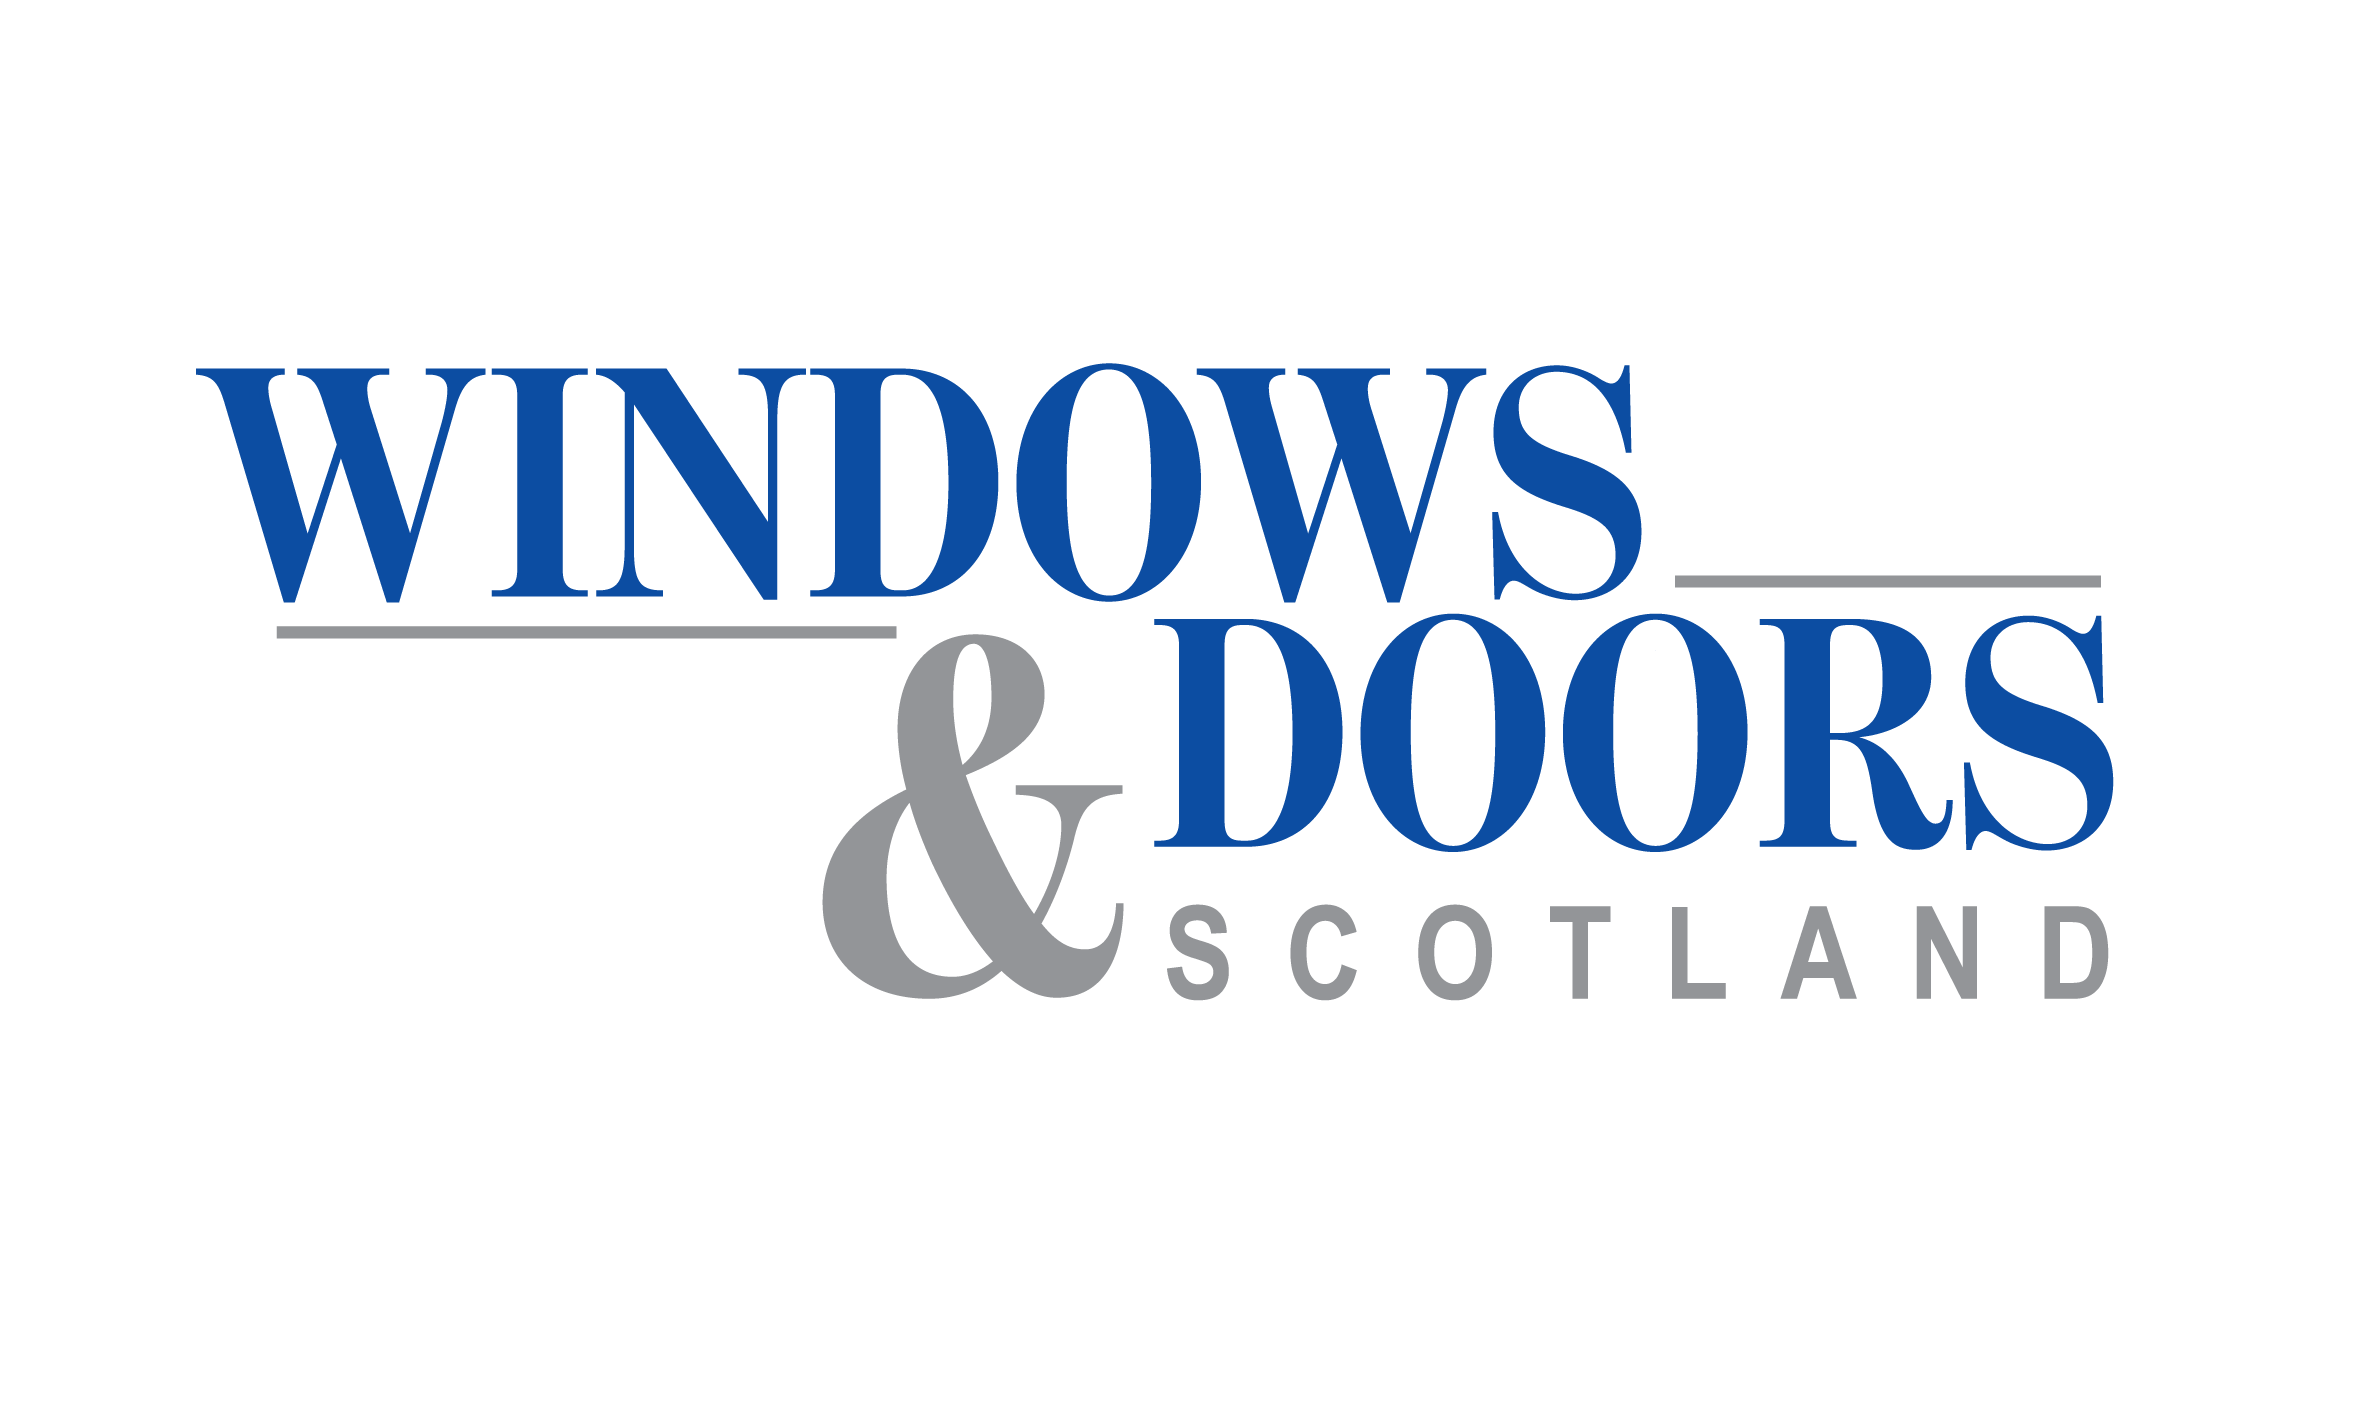 Windows And Doors Scotland logo